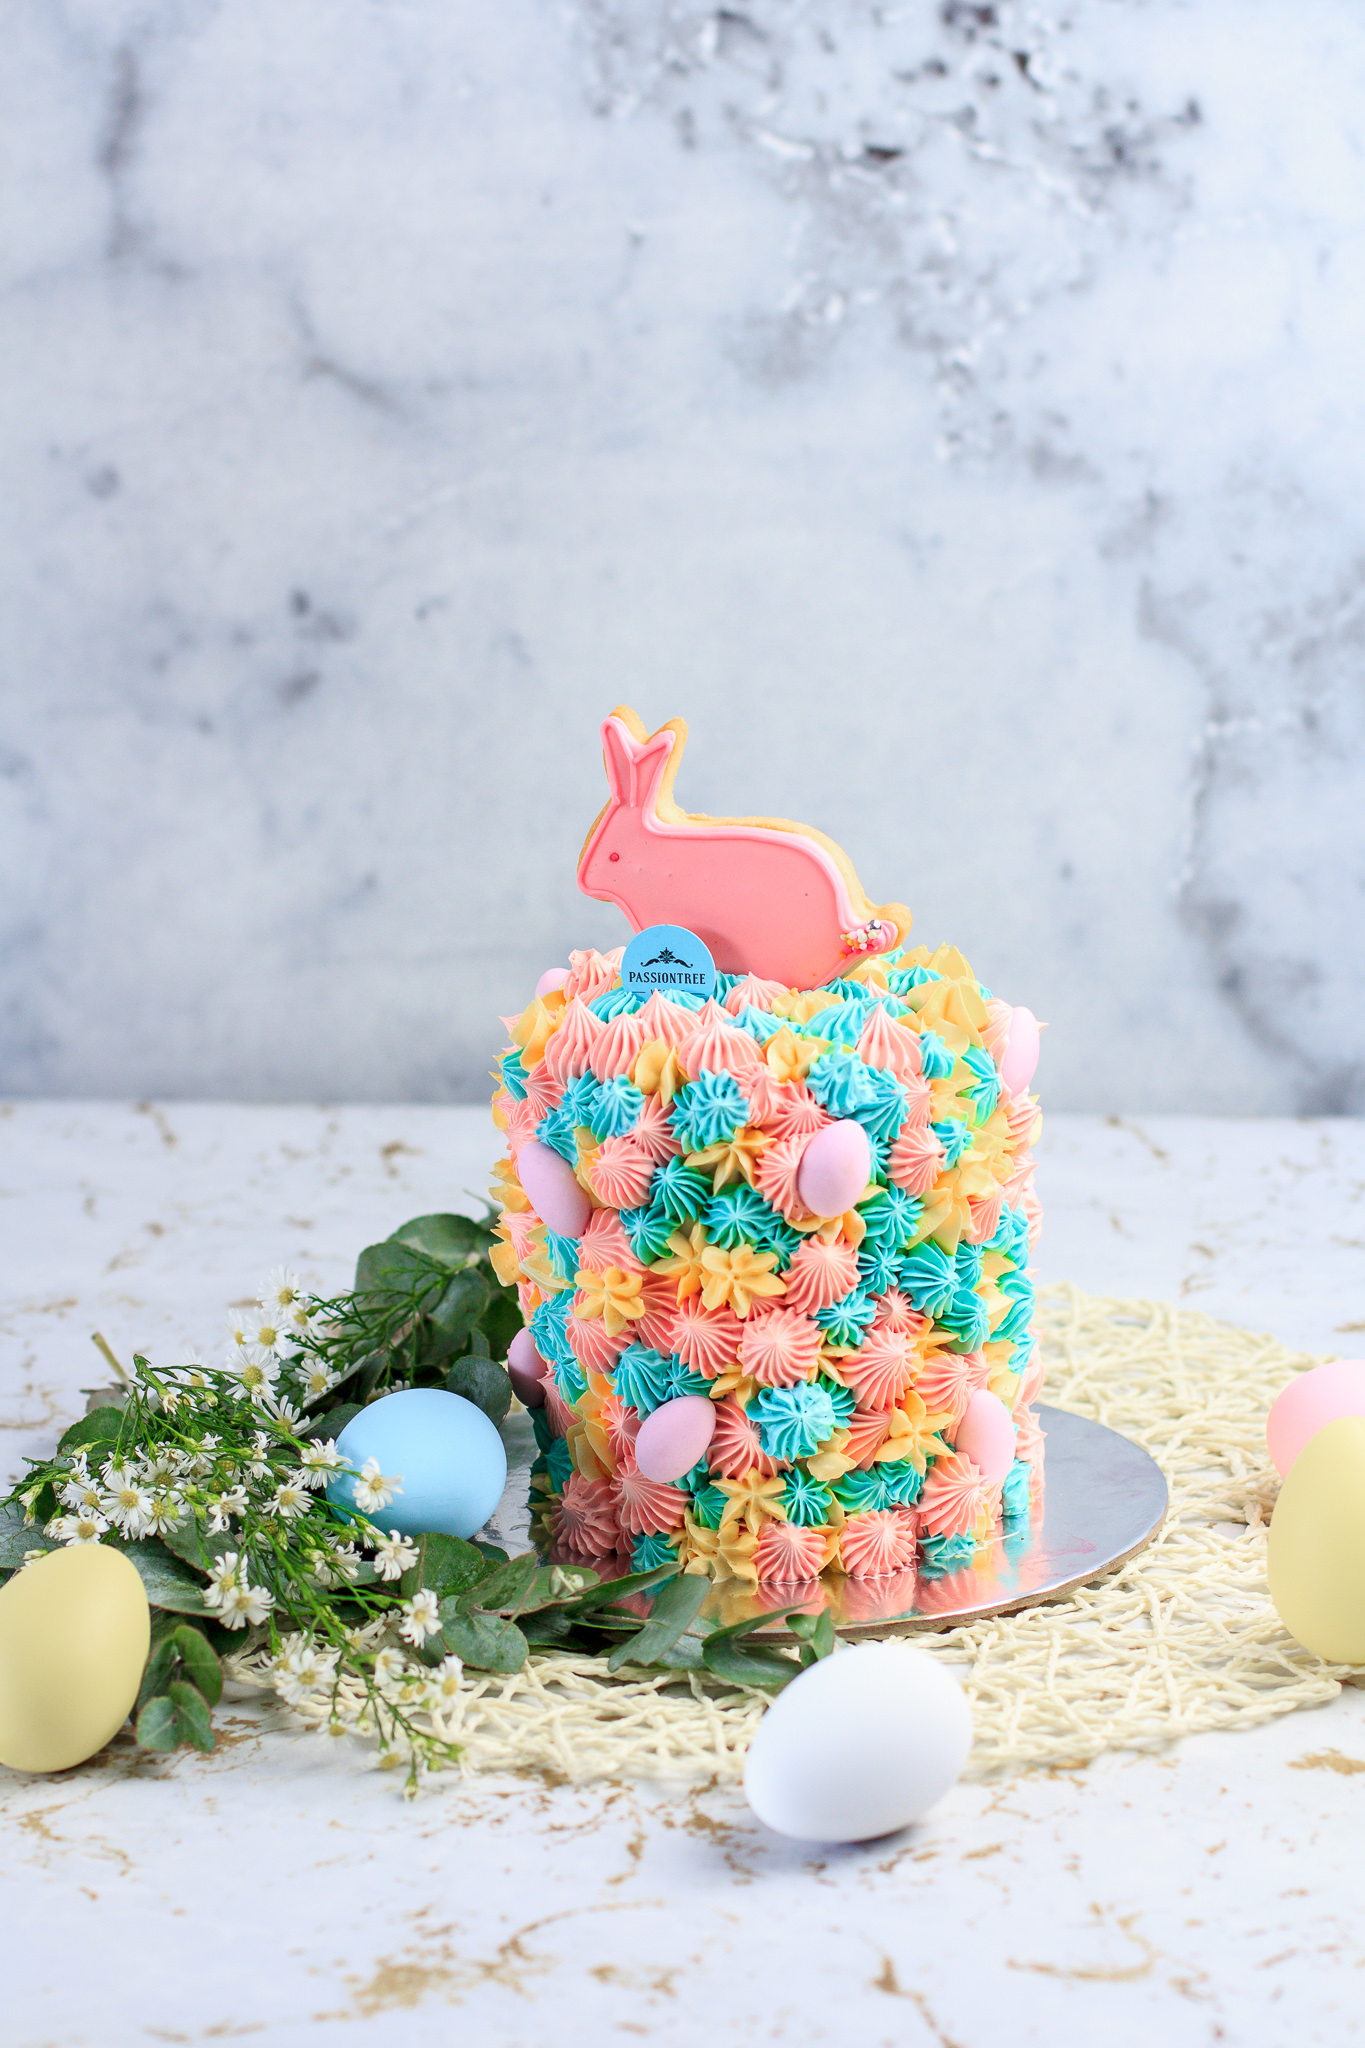 Passiontree Velvet Bunny Biscuit Easter Cake